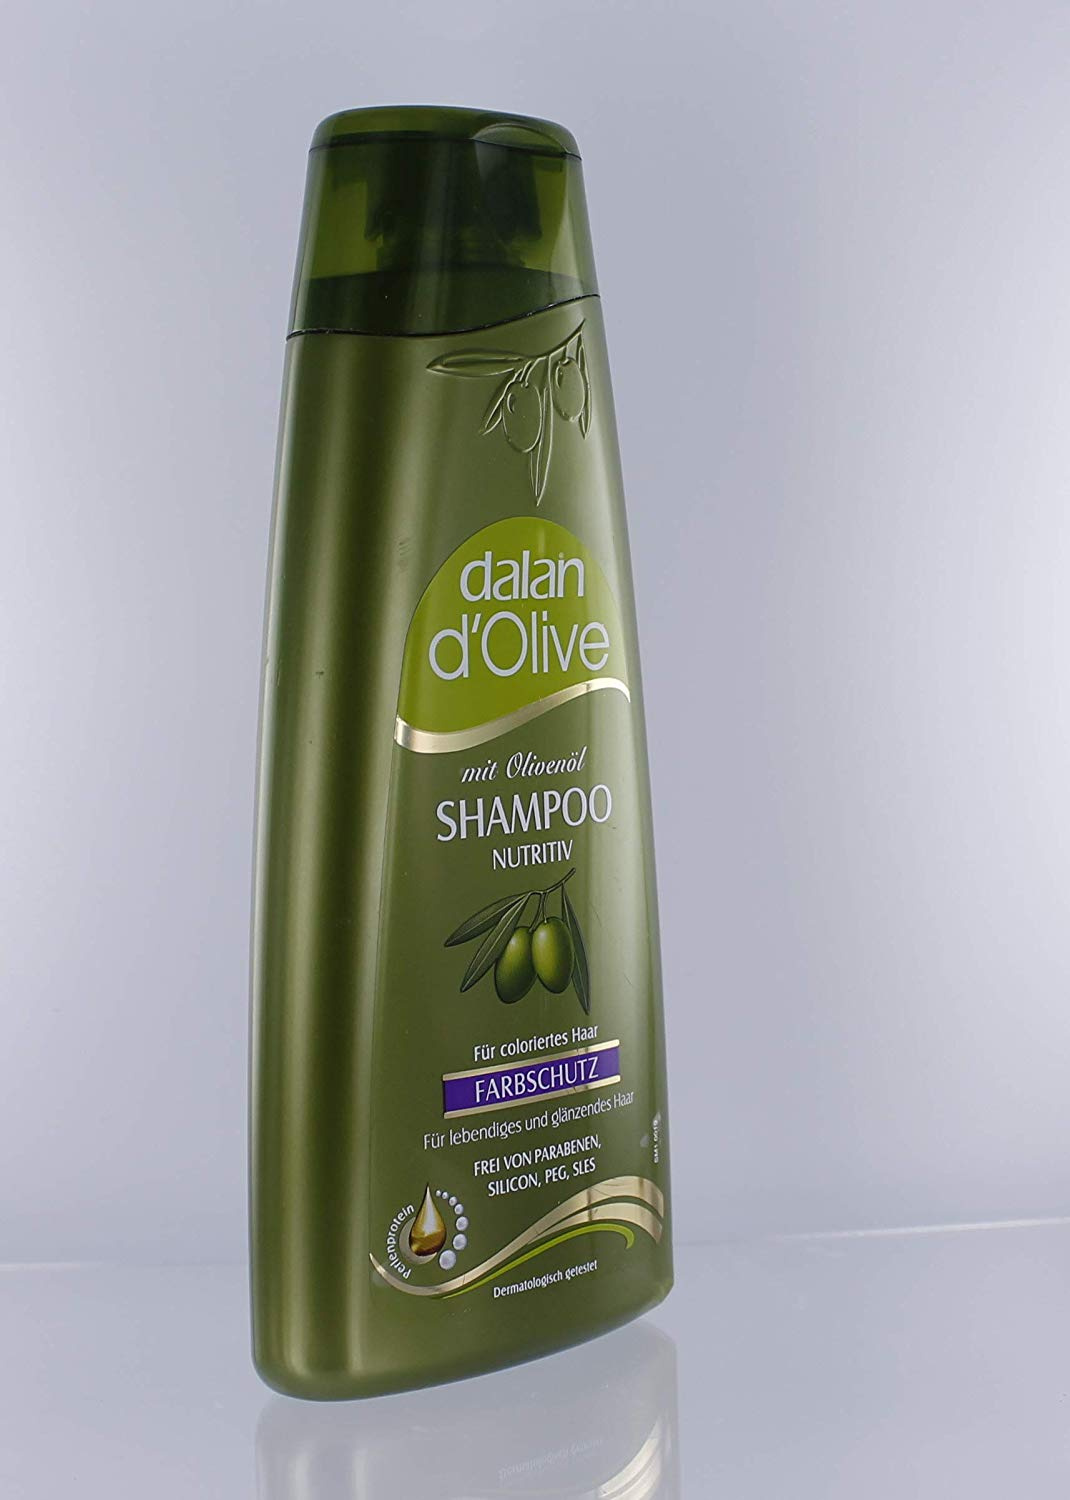 Dalan Dolive Buy Online From D Olive Body Oil 250ml